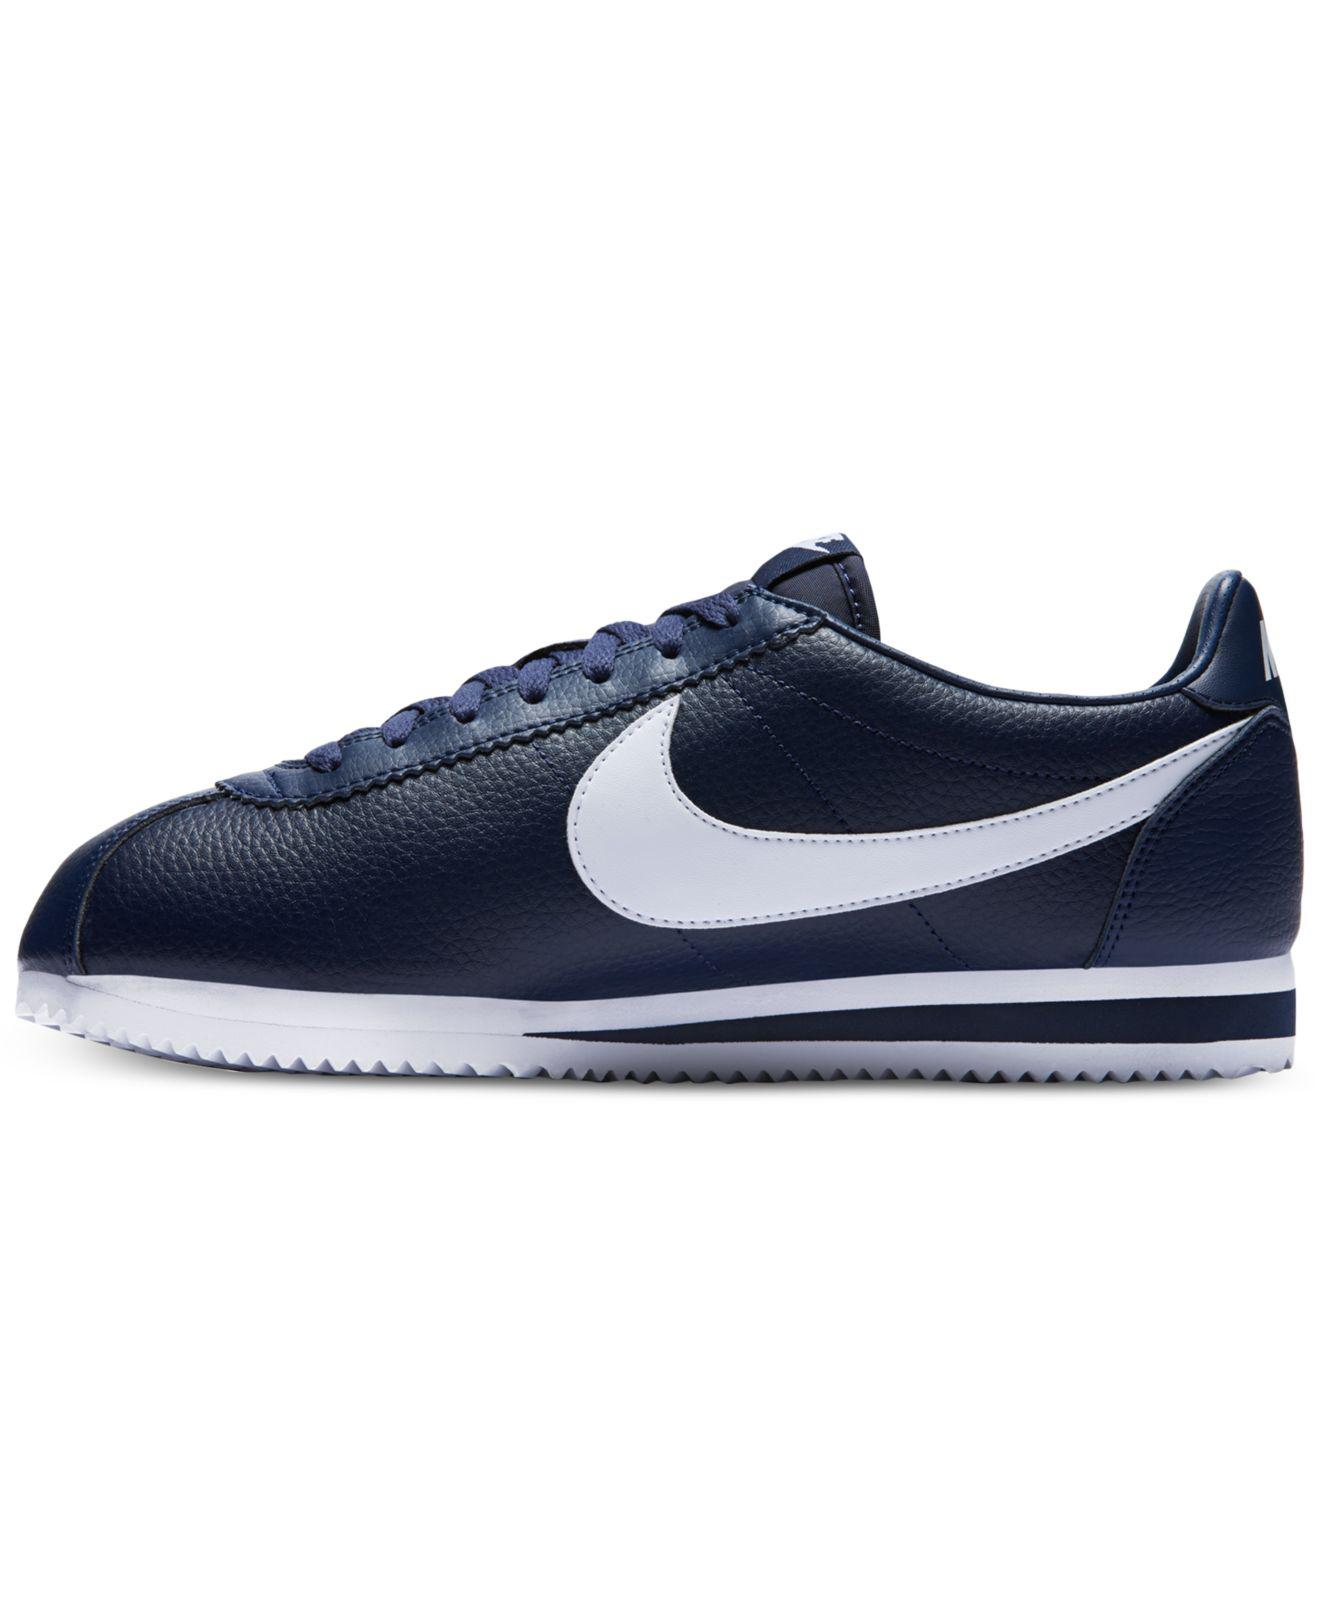 uk availability 00743 6cfe0 Lyst - Nike Classic Cortez Leather Casual Sneakers From Finish Line in Blue  for Men